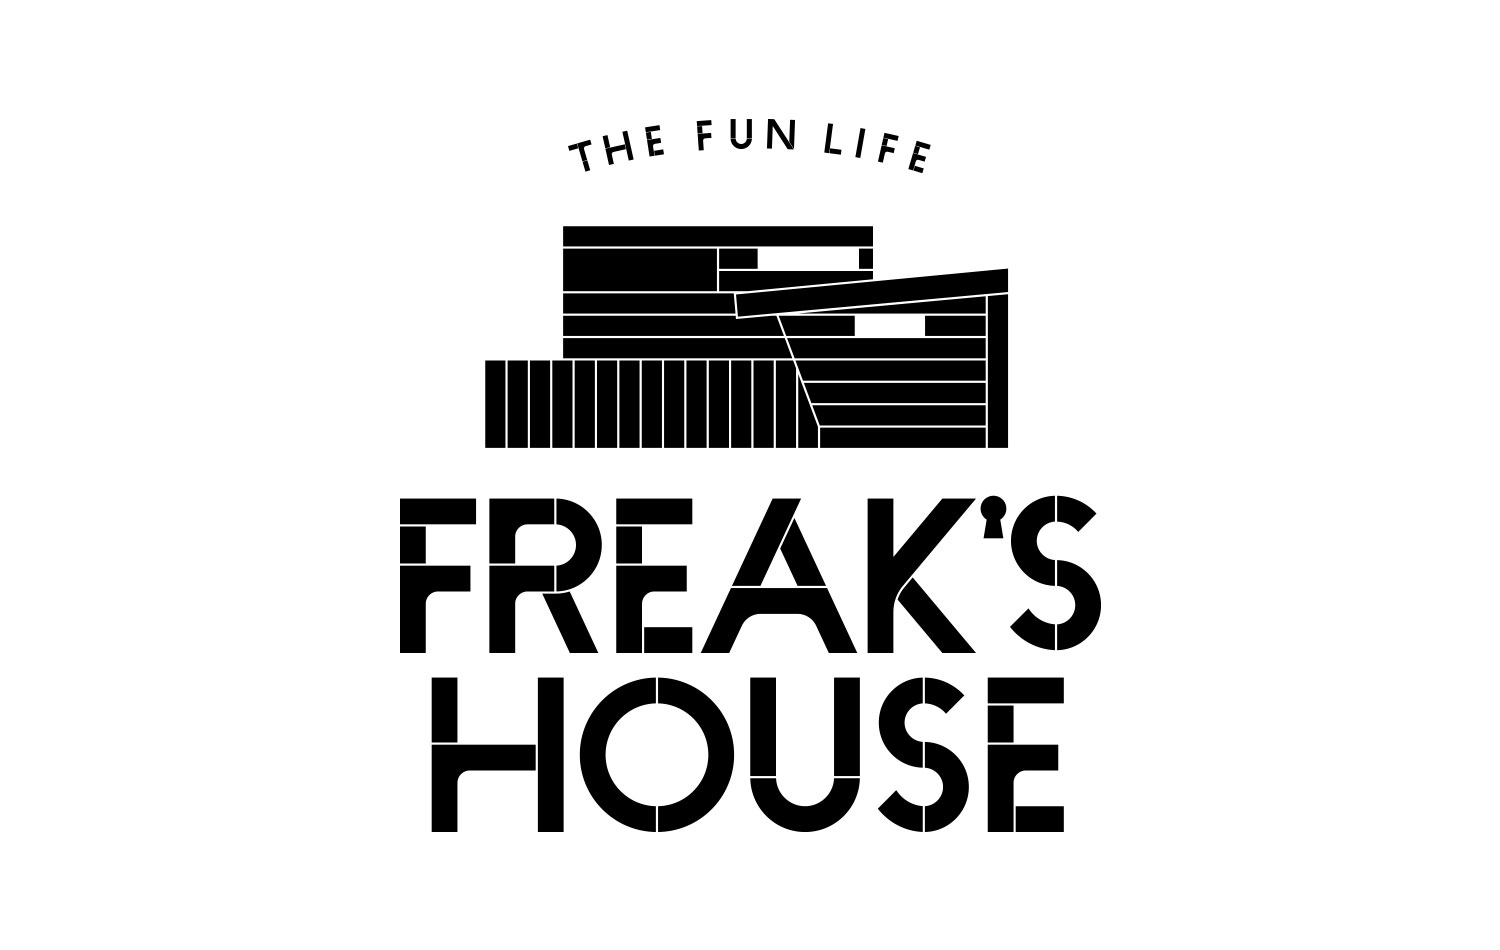 日本 FREAK'S HOUSE 民宿logo設計